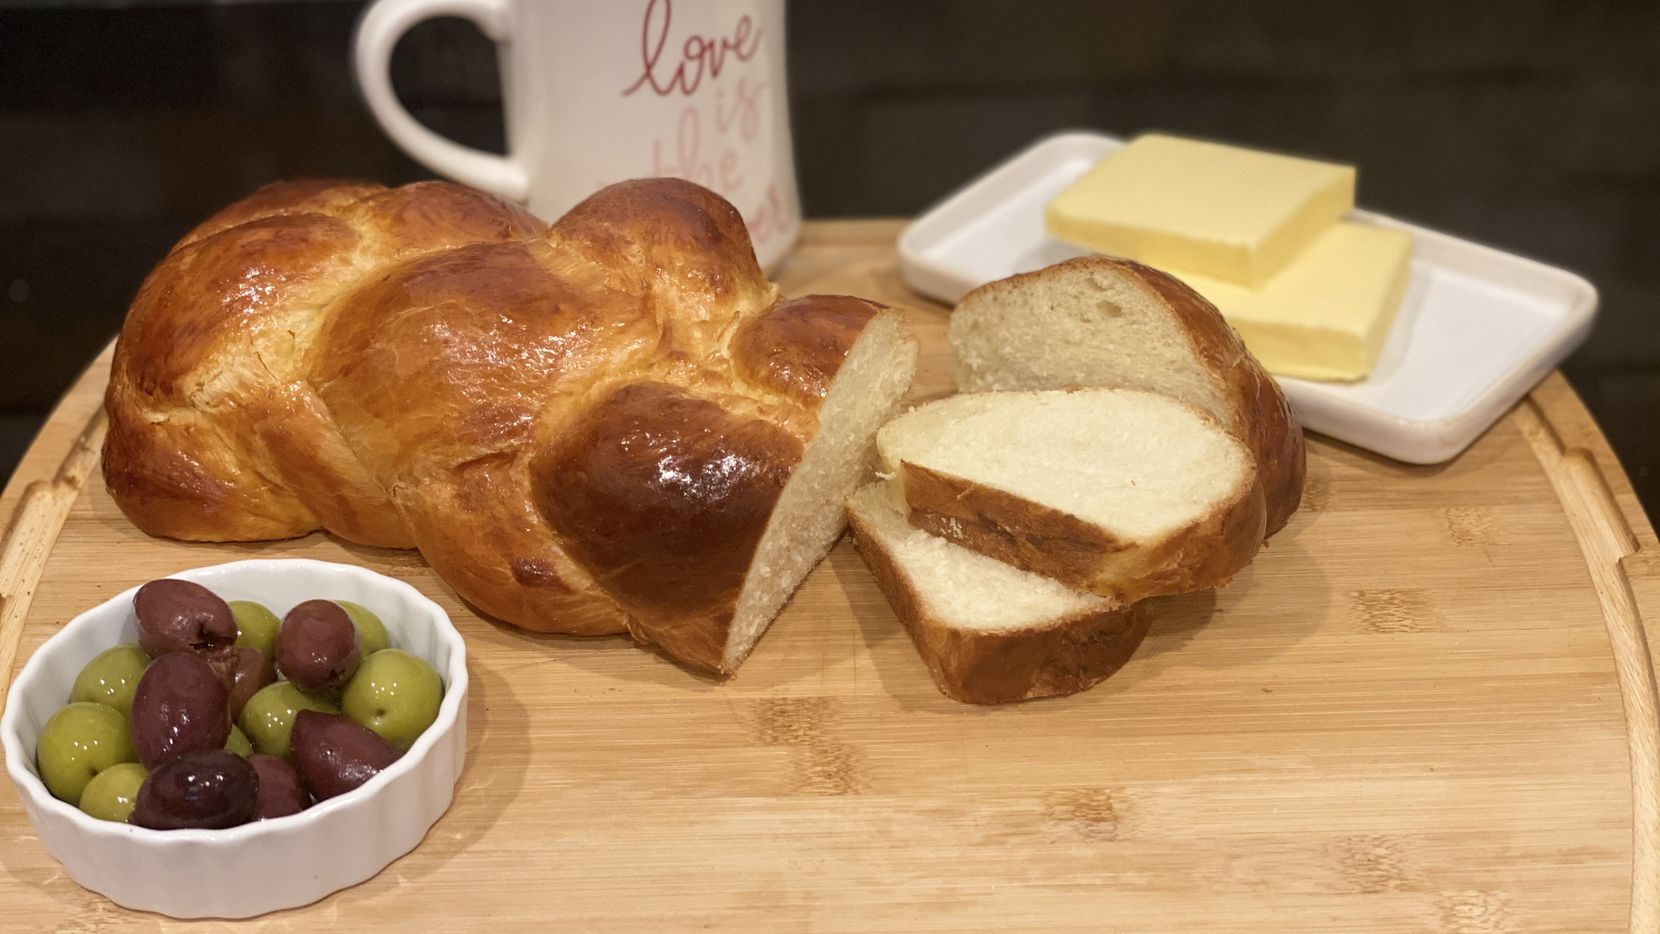 Tartalicious bakery in Plano has launched BreadEx, a weekly bread delivery service.